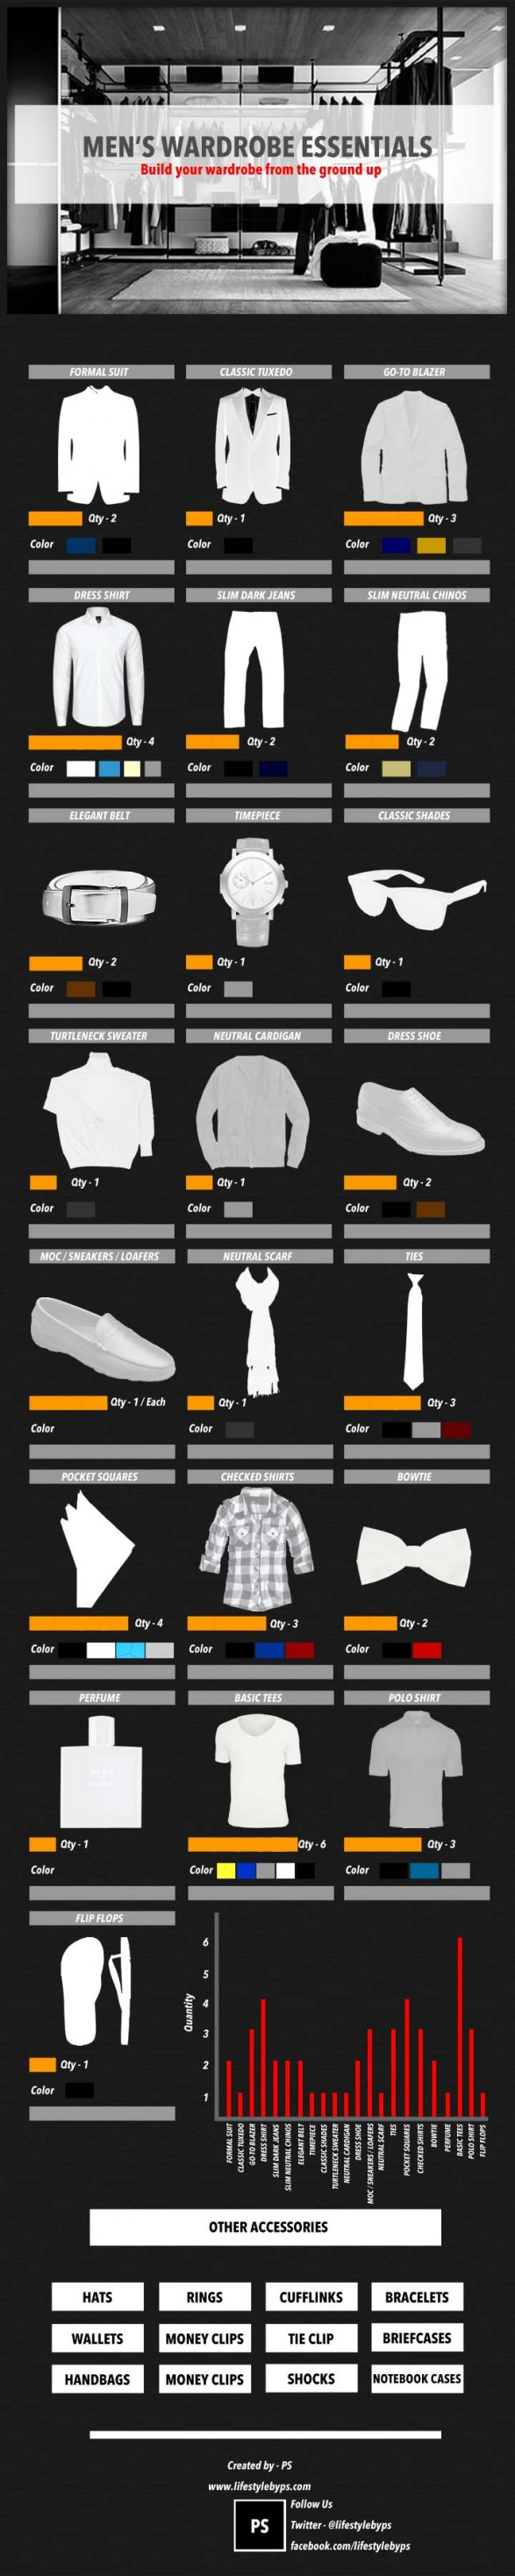 build-your-wardrobe-from-the-ground-up-wardrobe-essentials-for-men_519b35f55063d_w587